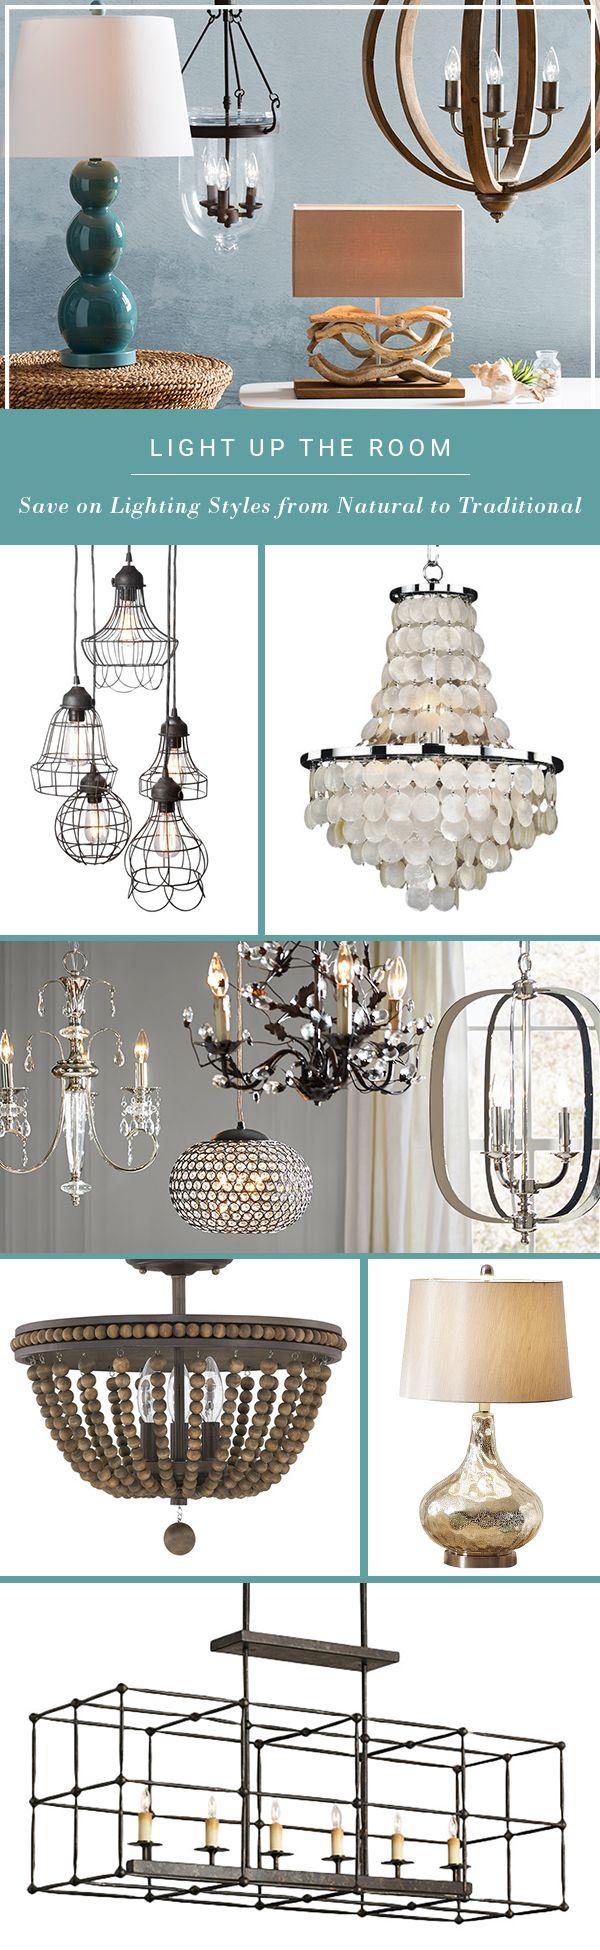 74 best 2 story foyer lighting images on pinterest chandeliers whether its a pendant table lamp or chandelier lighting can have a major effect on the look and feel of your space arubaitofo Image collections